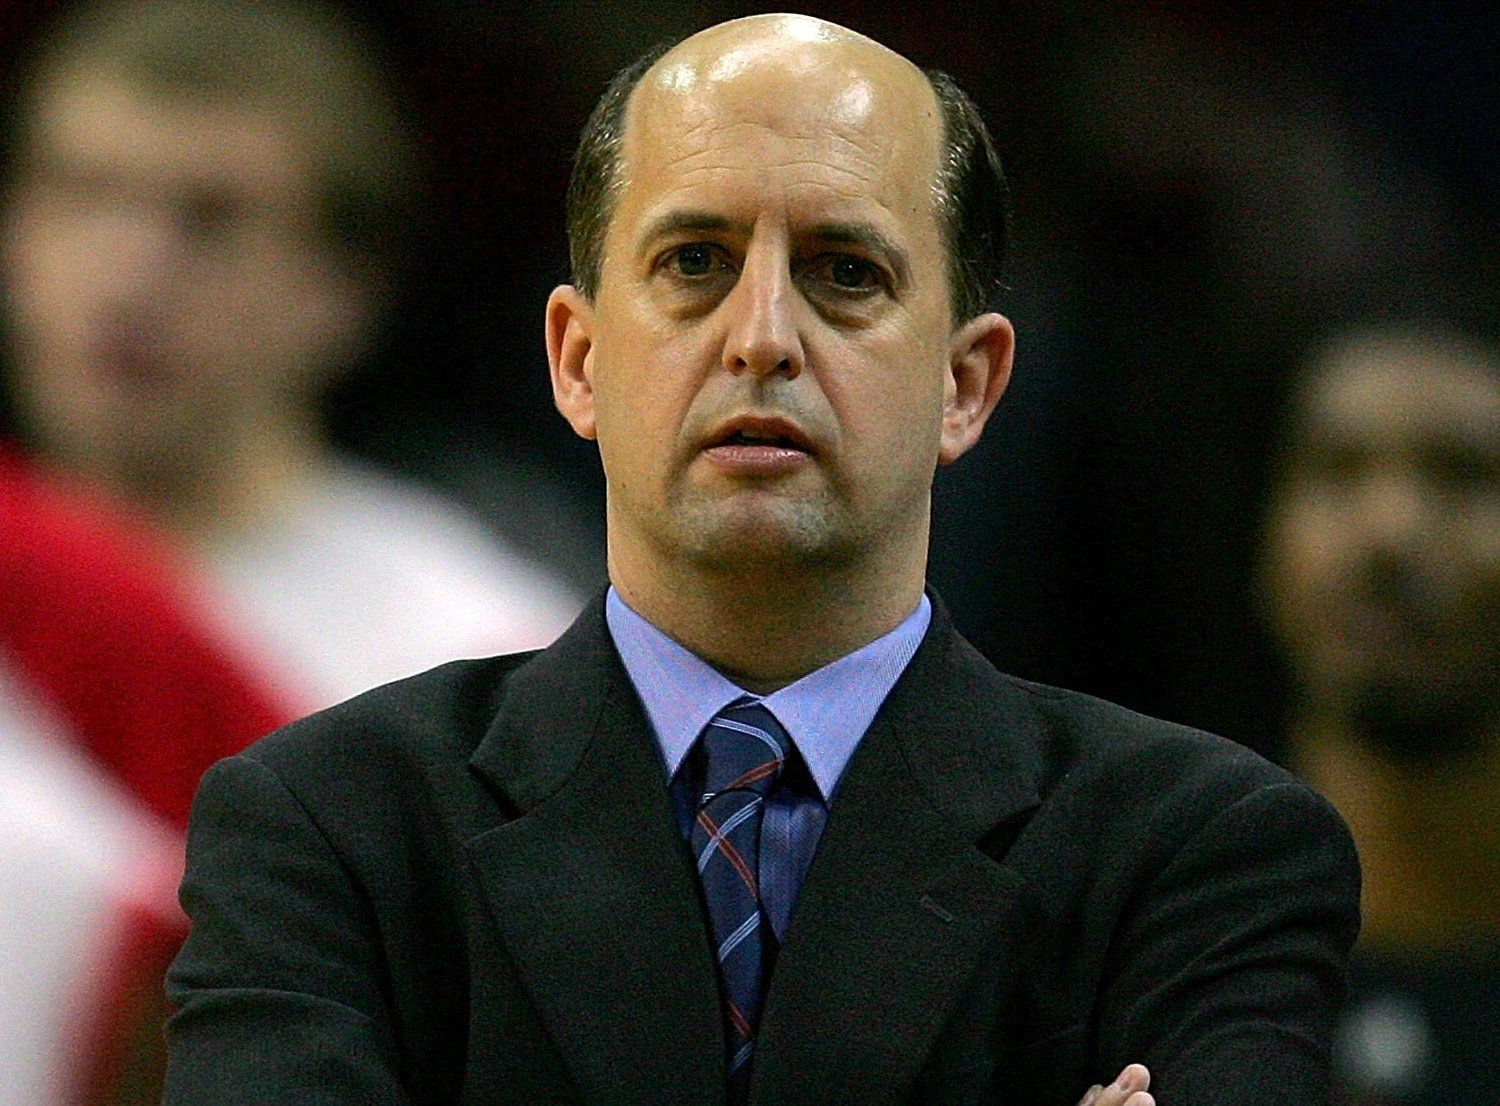 Houston rockets nba rumors - Nba Innovative Coverage Nba Rumor Could Jeff Van Gundy Be The Next Coach